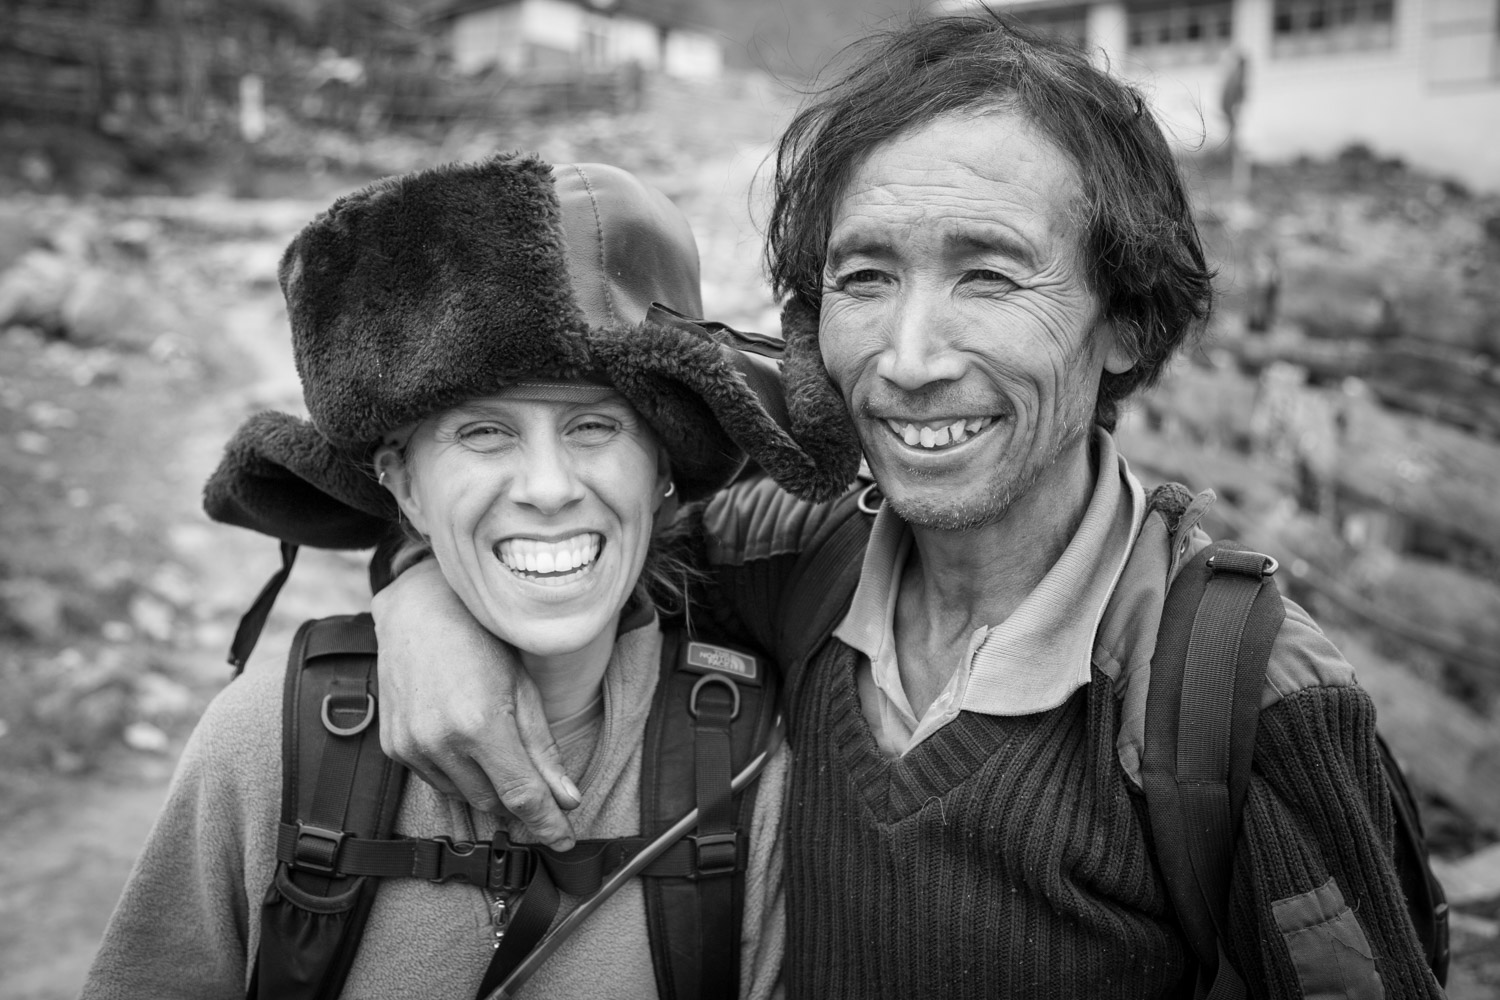 Friendly Stranger in Nepal